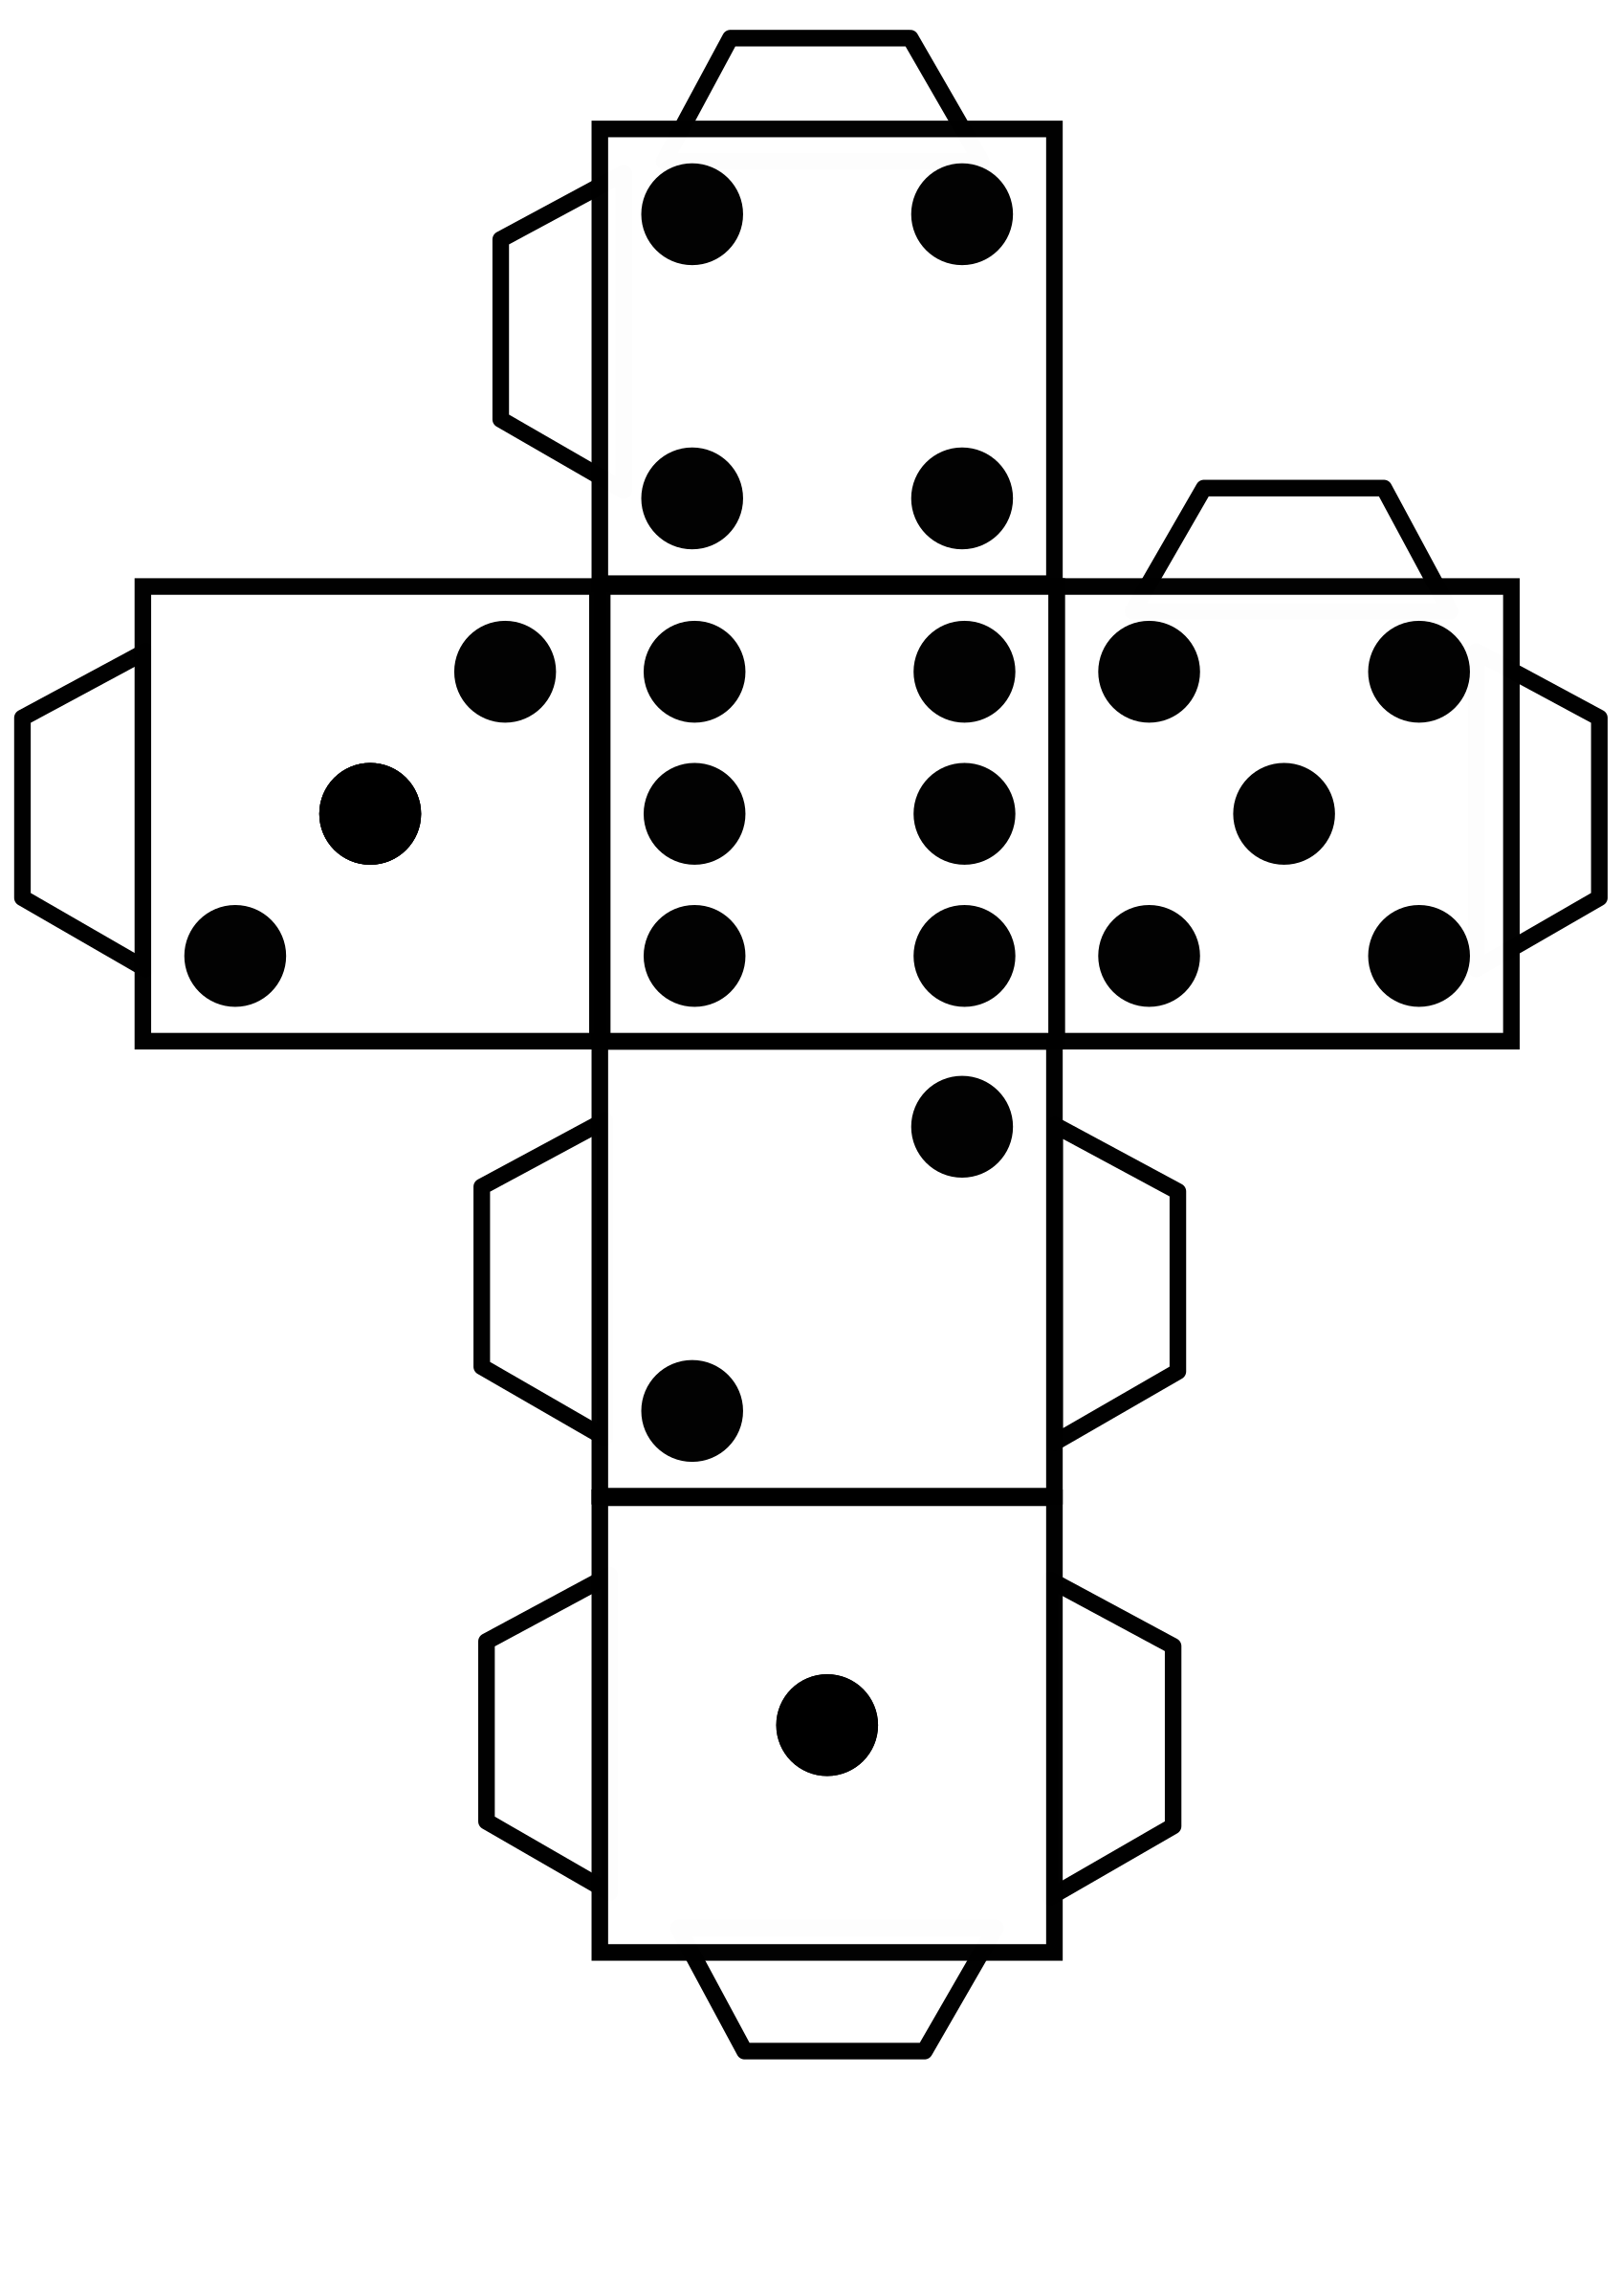 1697x2400 Printable Die Dice By @snifty, A Template For Printing Out Dice